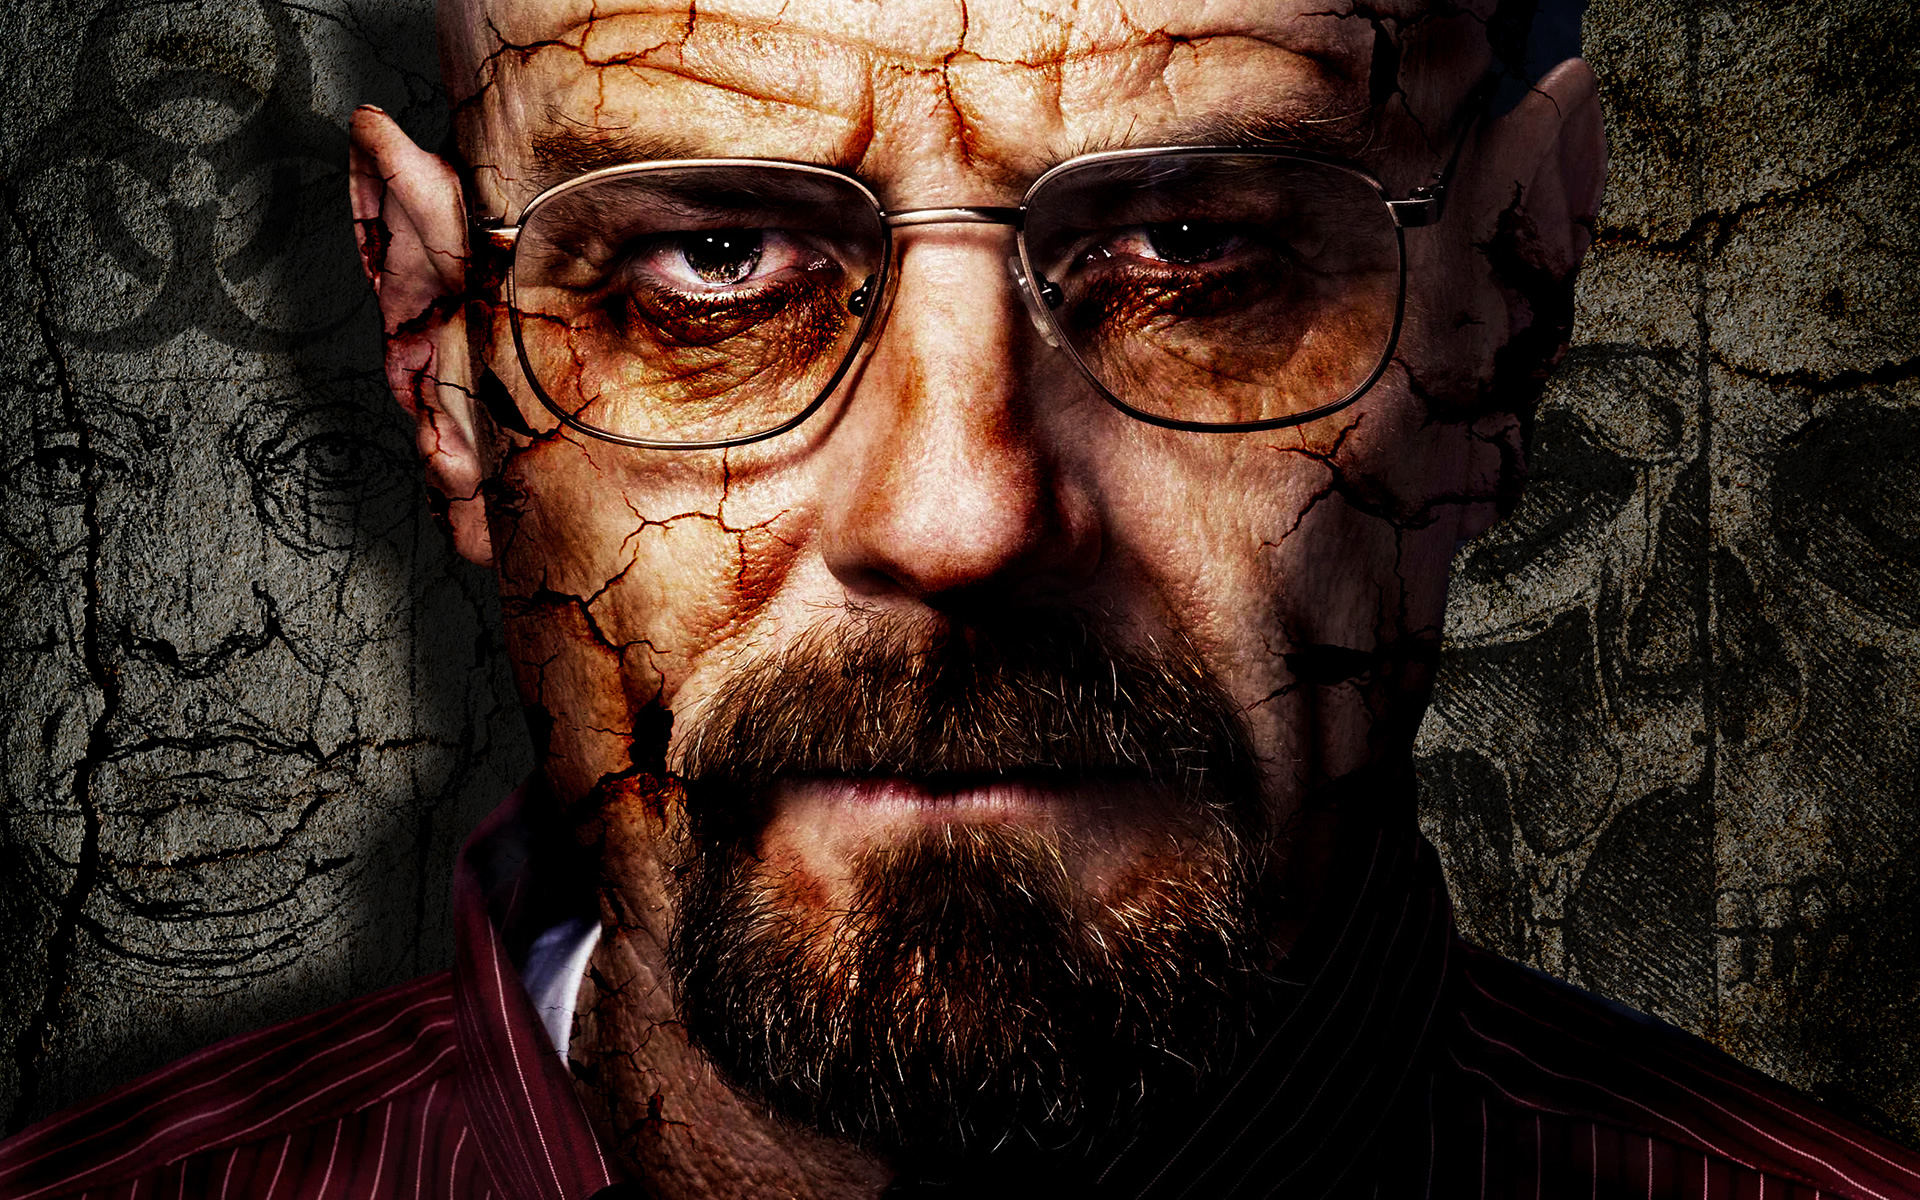 breaking-bad-wallpapers-hd-to-download-for-free_10